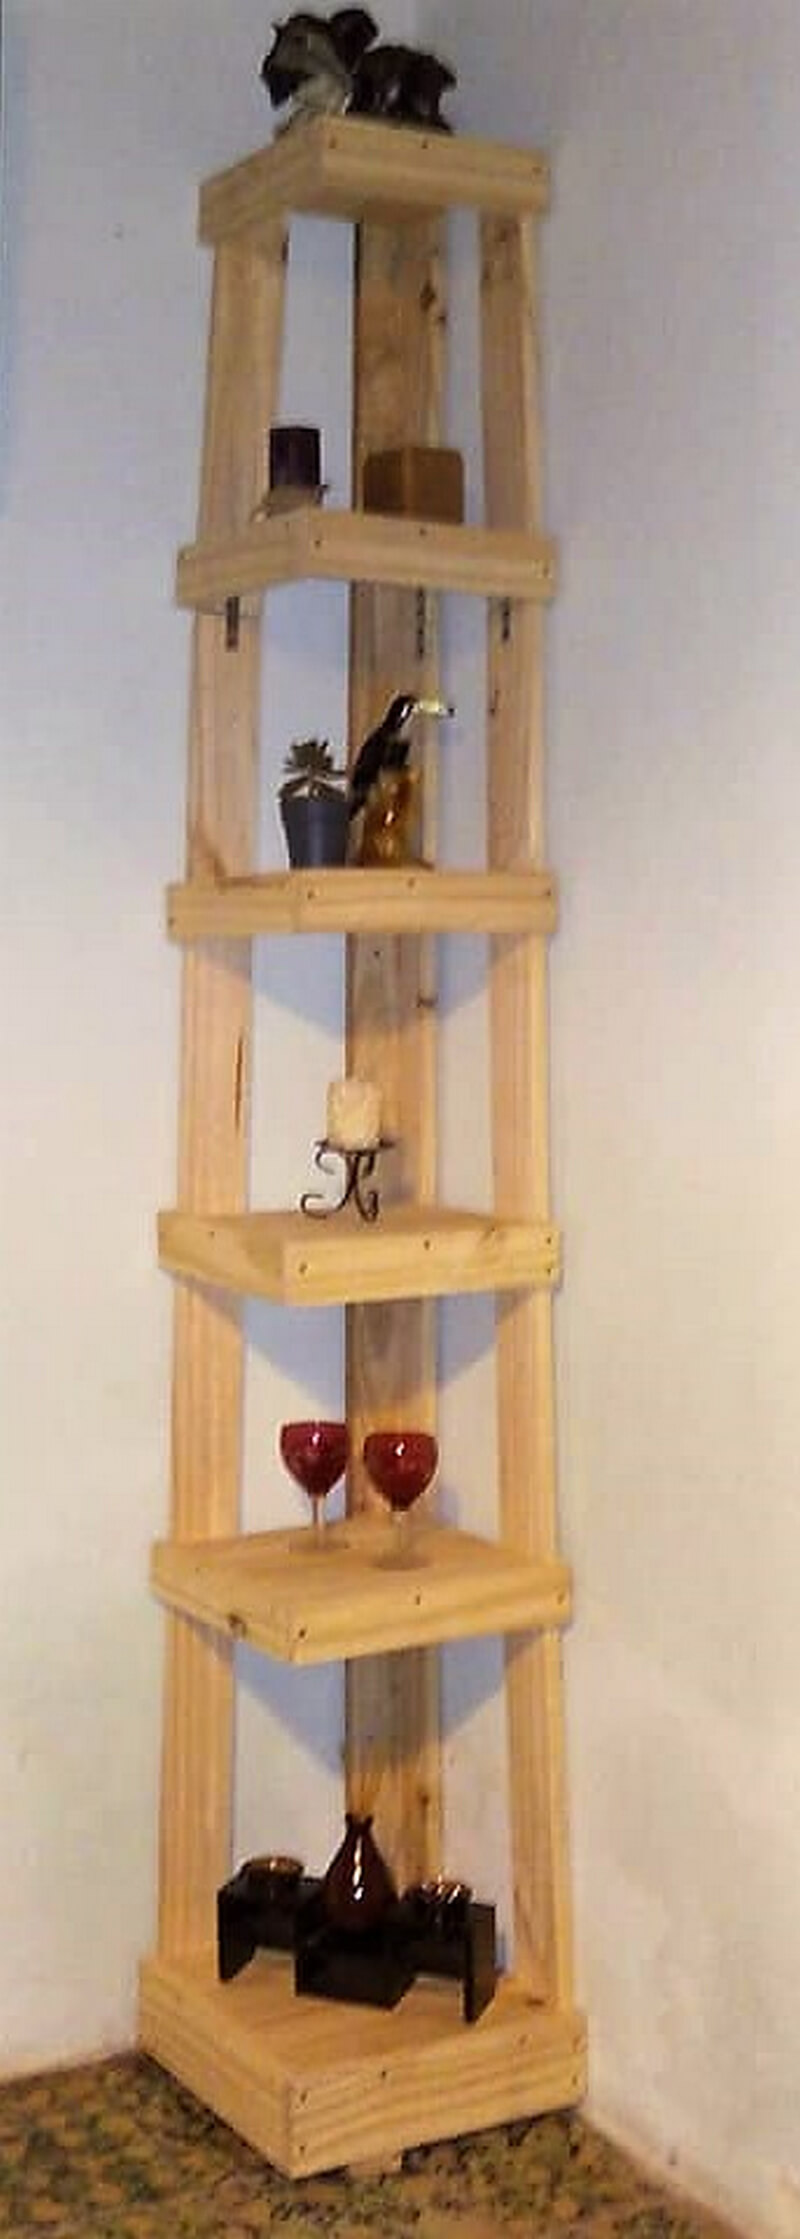 pallet corner decor shelf